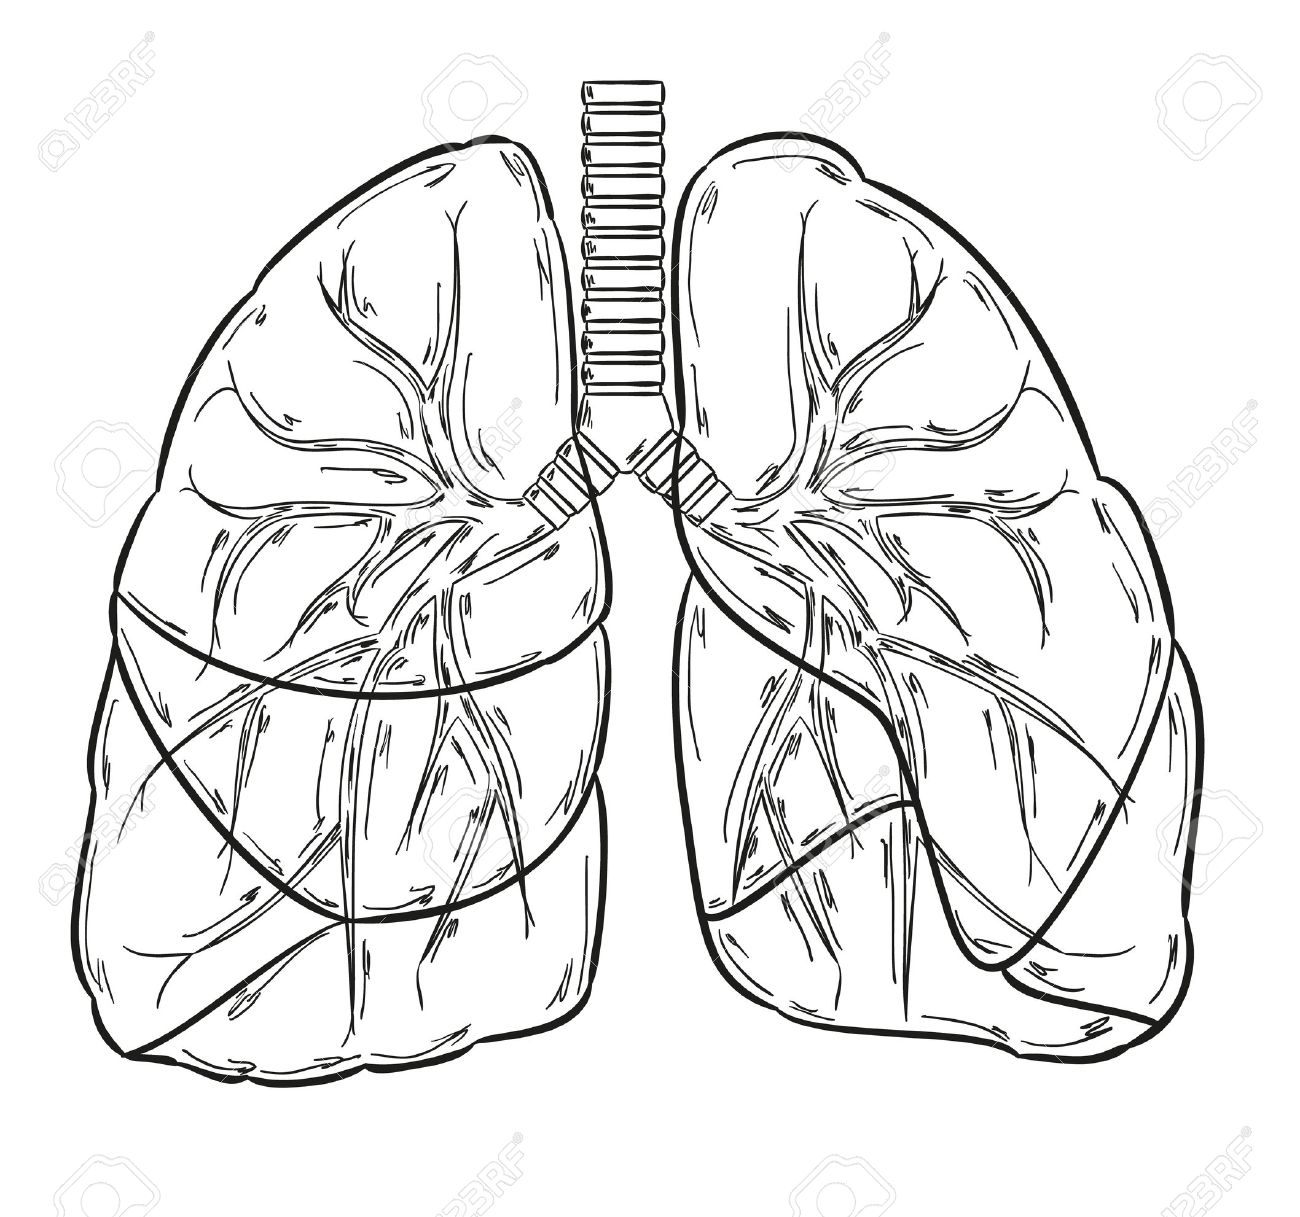 Lung drawing at getdrawings. Cancer clipart sketch